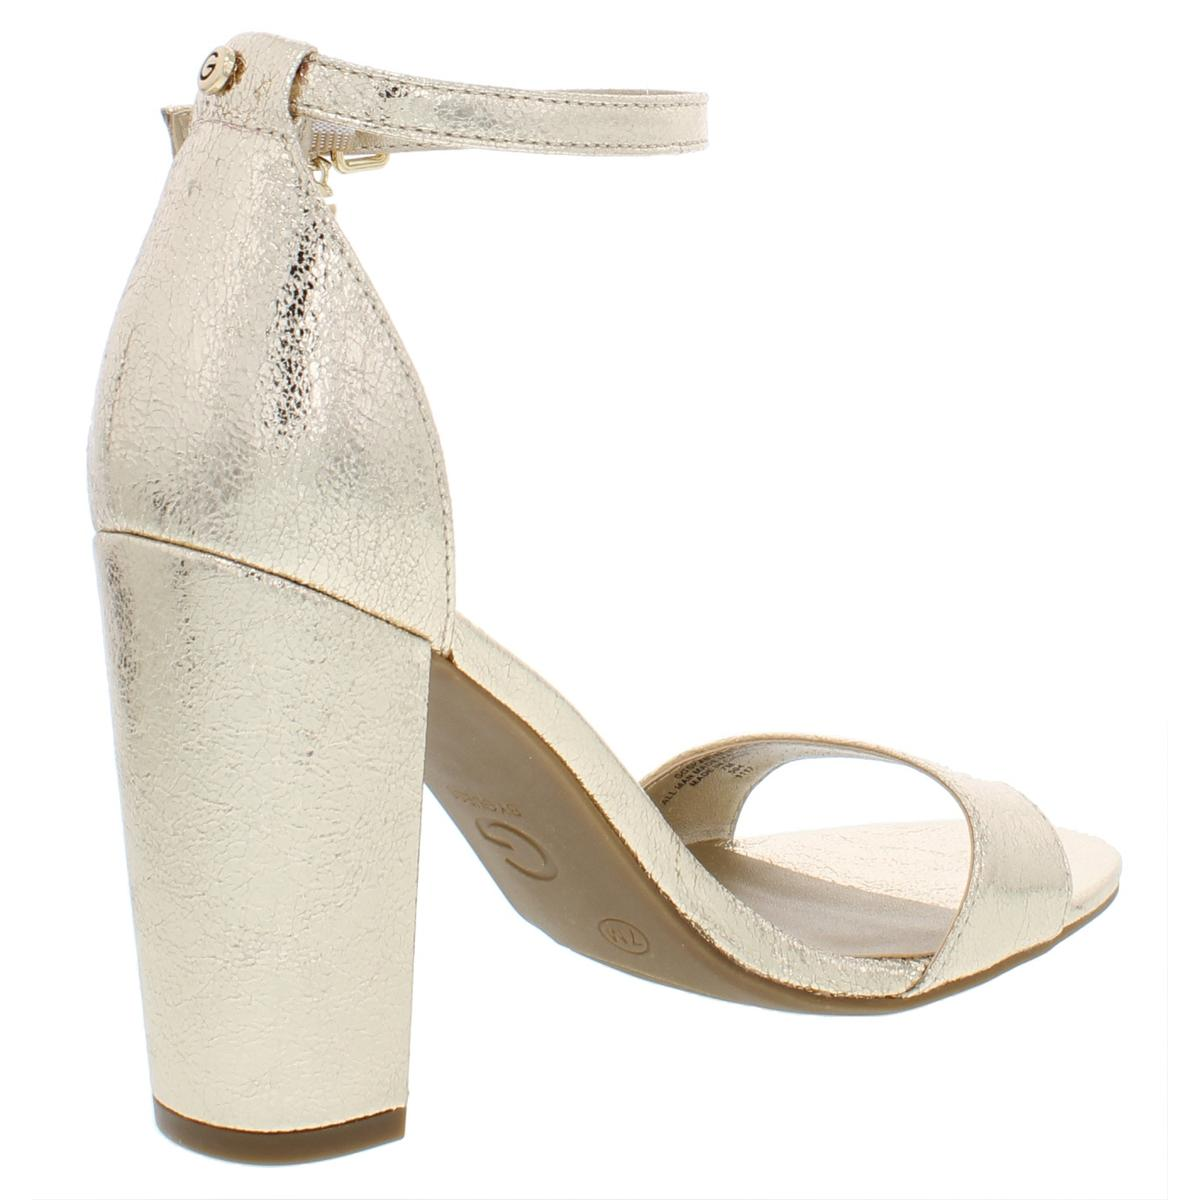 G-by-Guess-Womens-Shantel-3-Padded-Insole-Dress-Sandals-Shoes-BHFO-2561 thumbnail 8